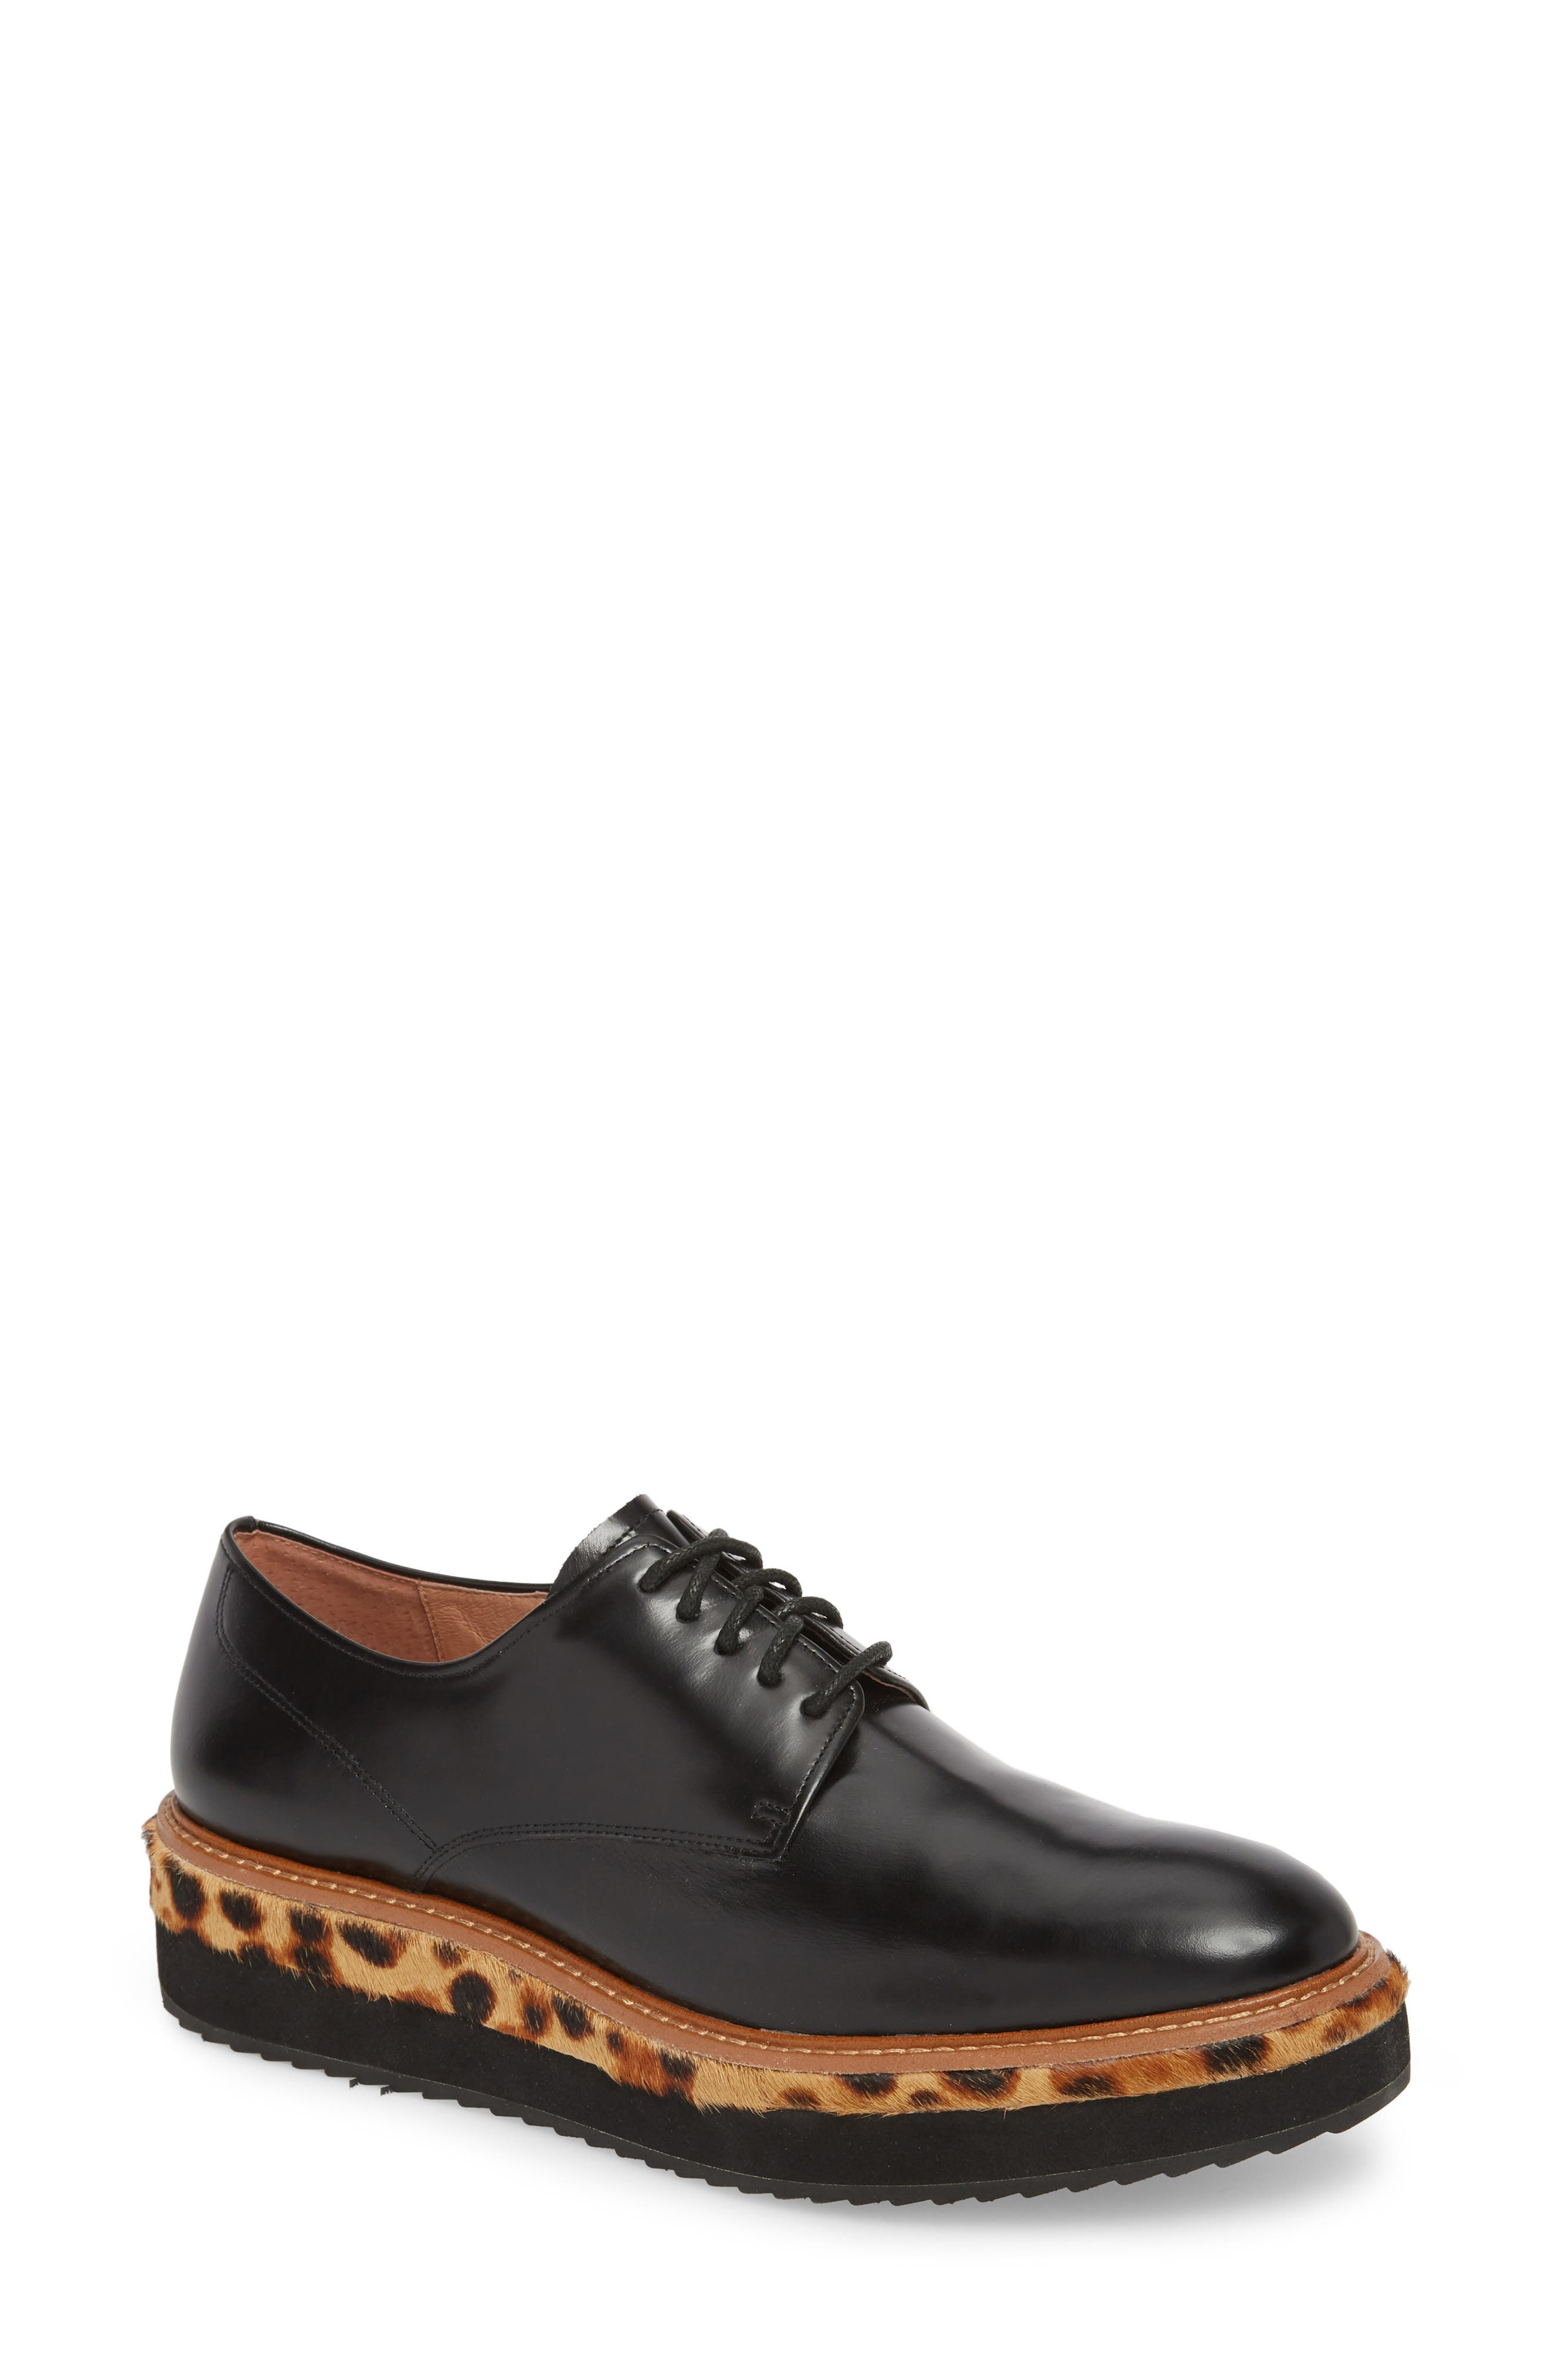 Maddox Oxford,                             Main thumbnail 1, color,                             BLACK BOX LEATHER/ LEOPARD